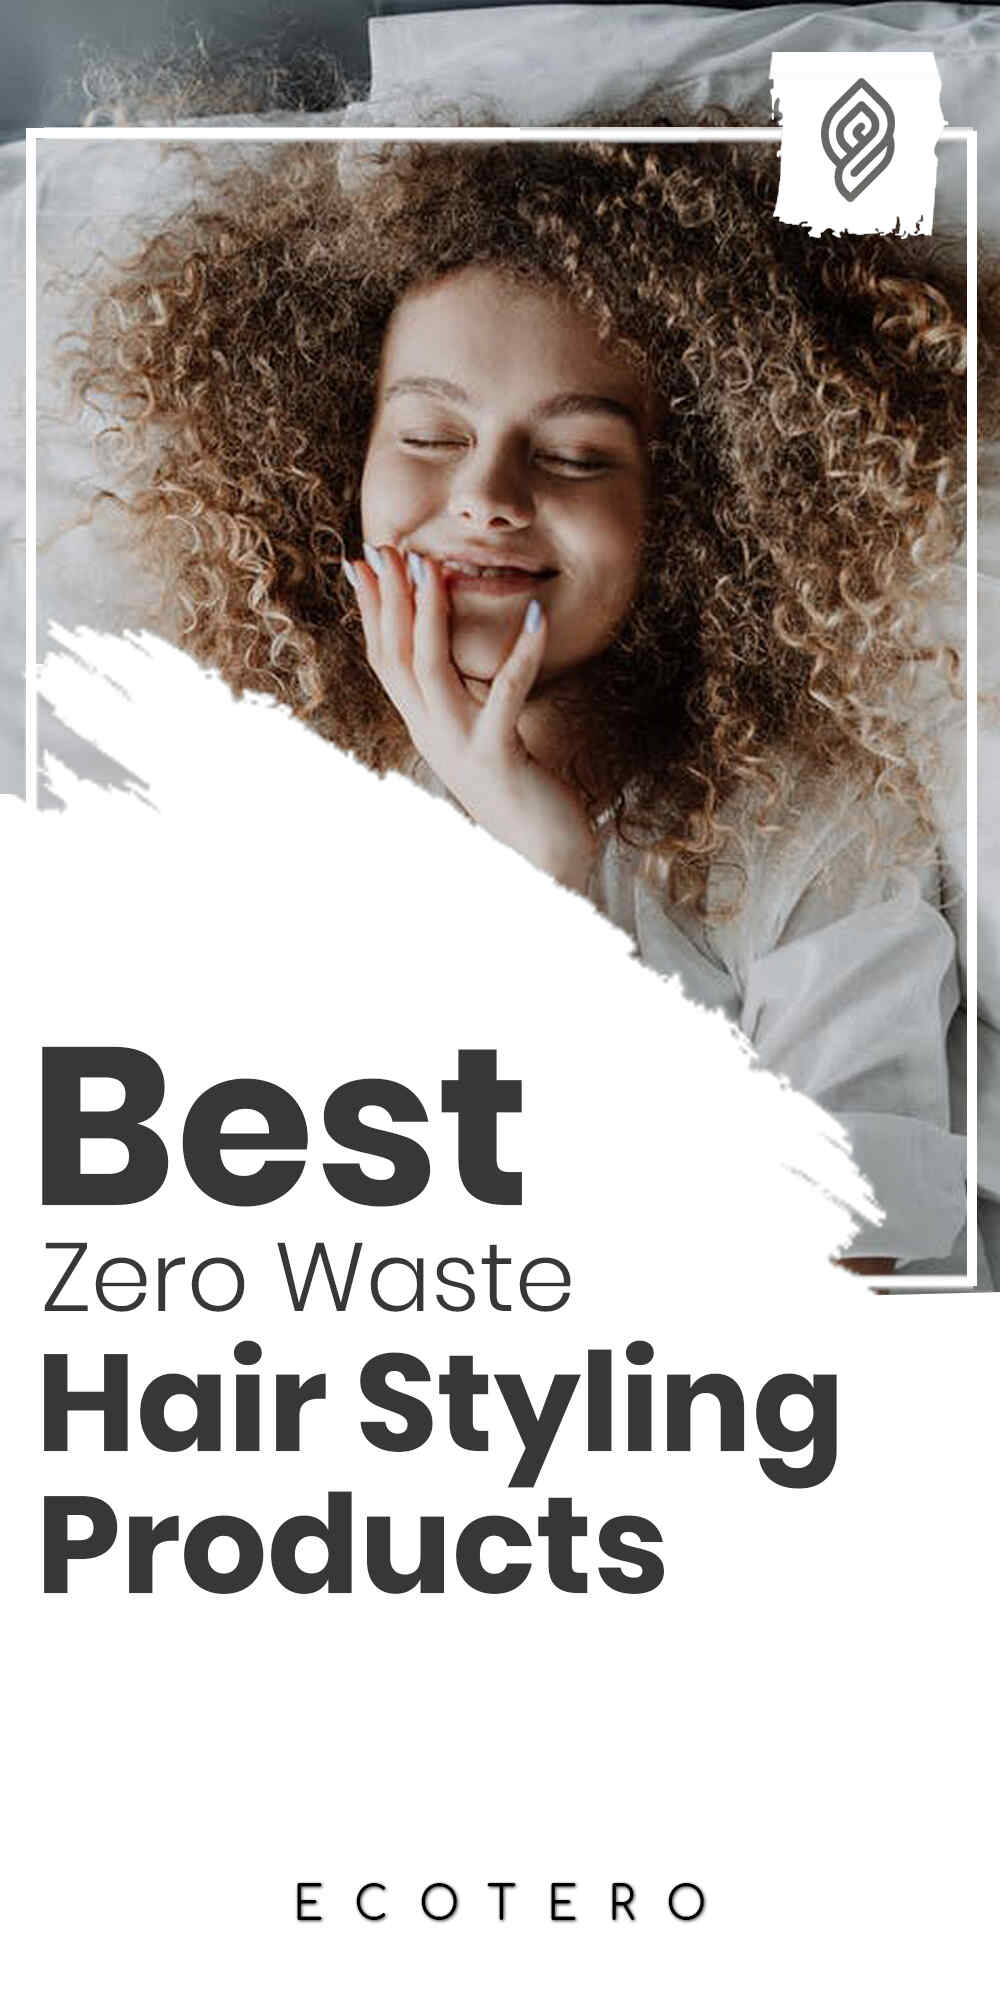 Best-Zero-Waste-Hair-Styling-Products